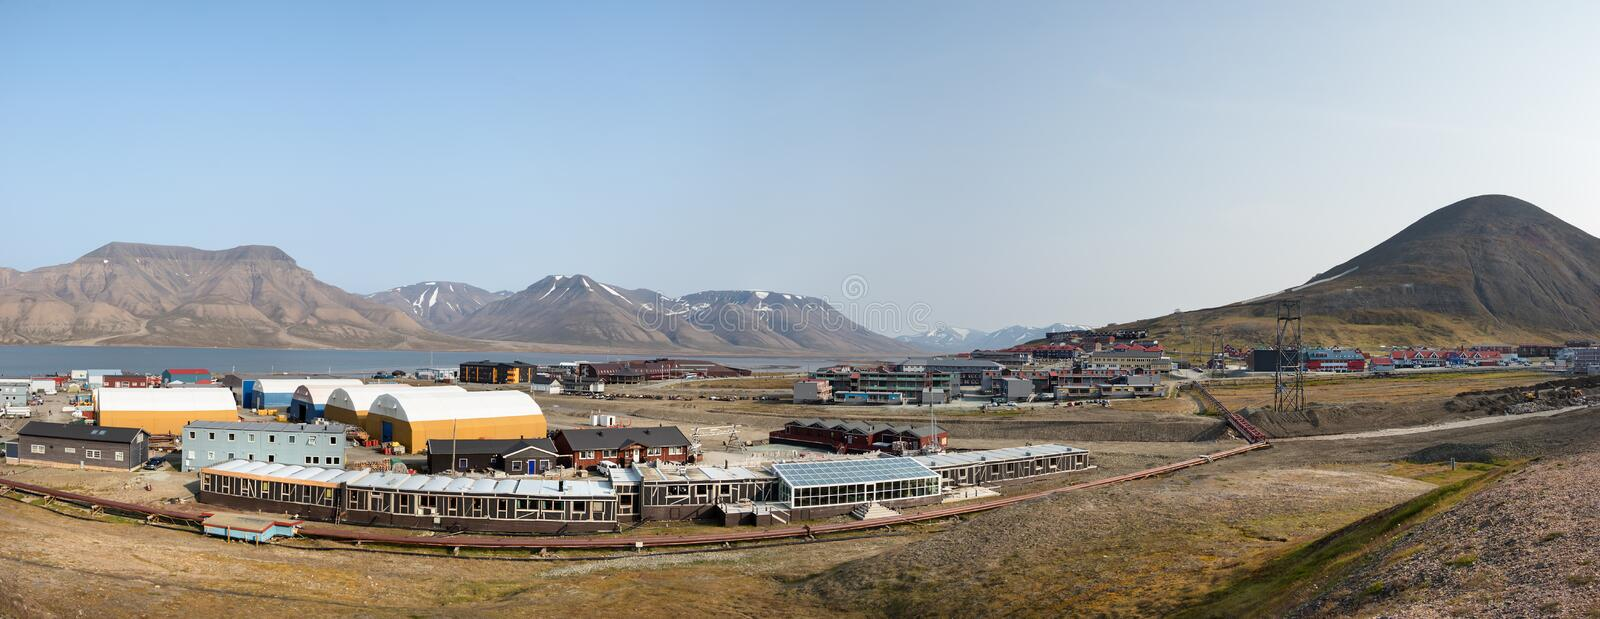 Panorama of the center of Longyearbyen in Svalbard, Norway royalty free stock photo